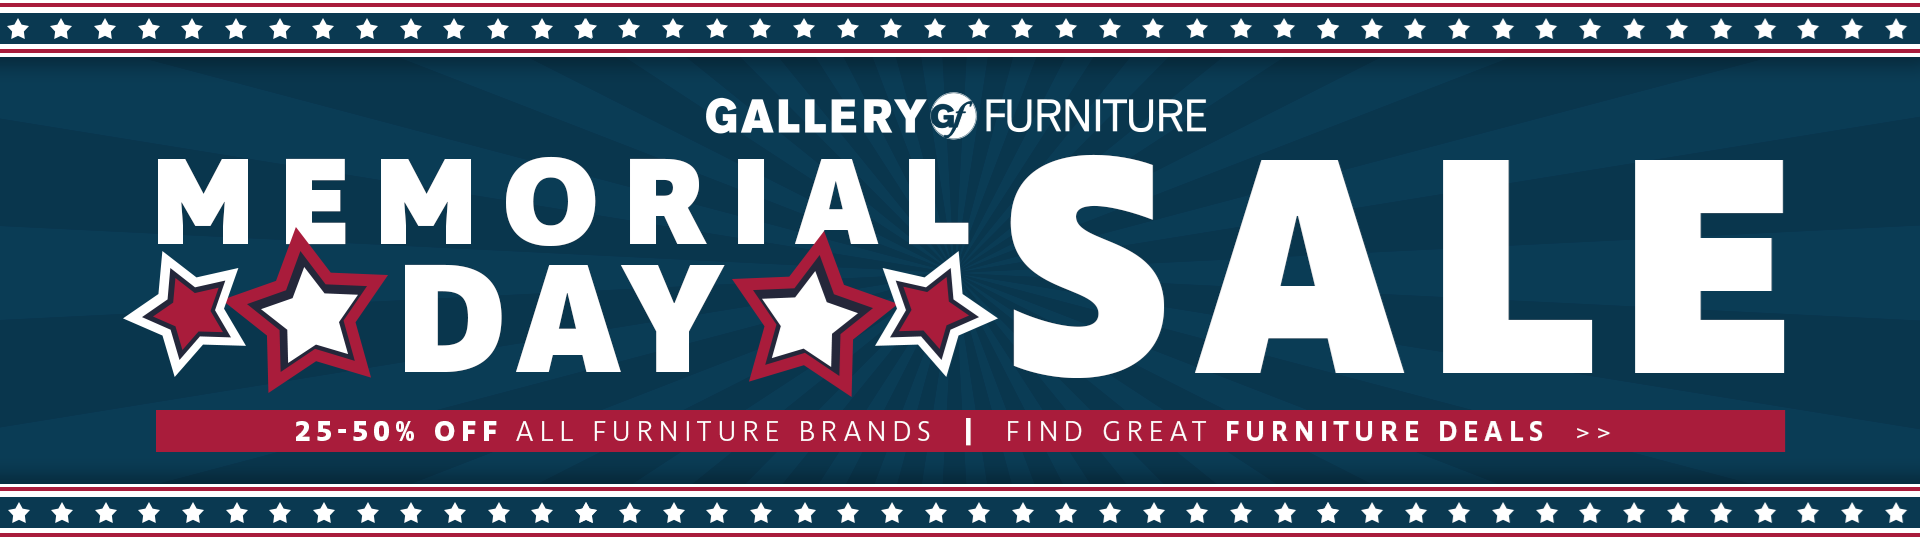 HUGE DEALS during our Memorial Day Sale!